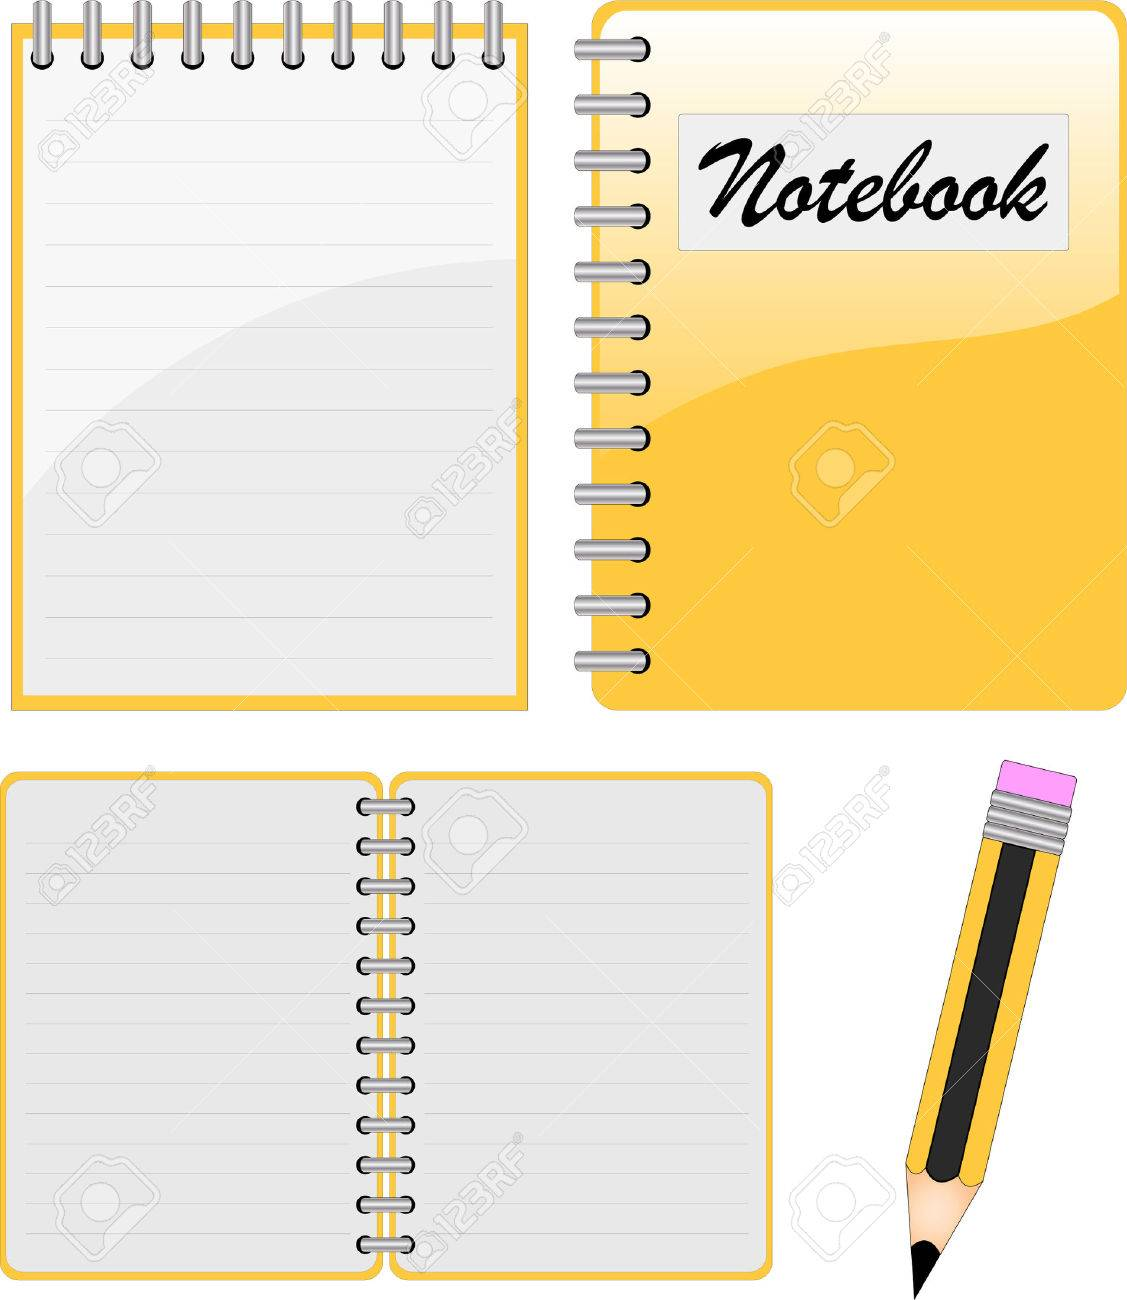 notebook, notepad and pencil Stock Vector - 5006279